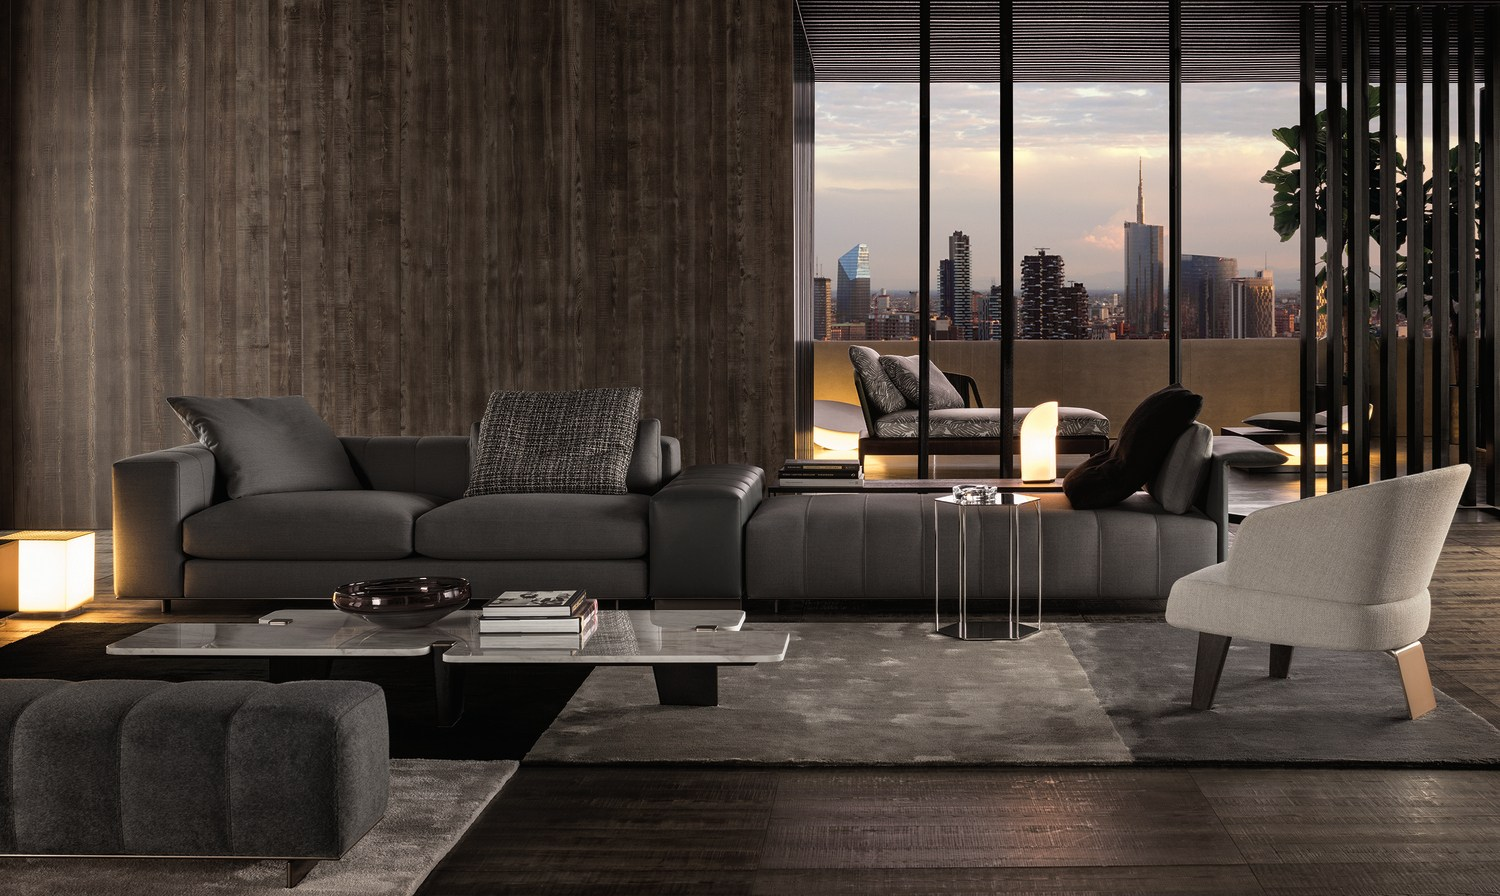 freeman modular sofa by rodolfo dordoni for minotti. Black Bedroom Furniture Sets. Home Design Ideas